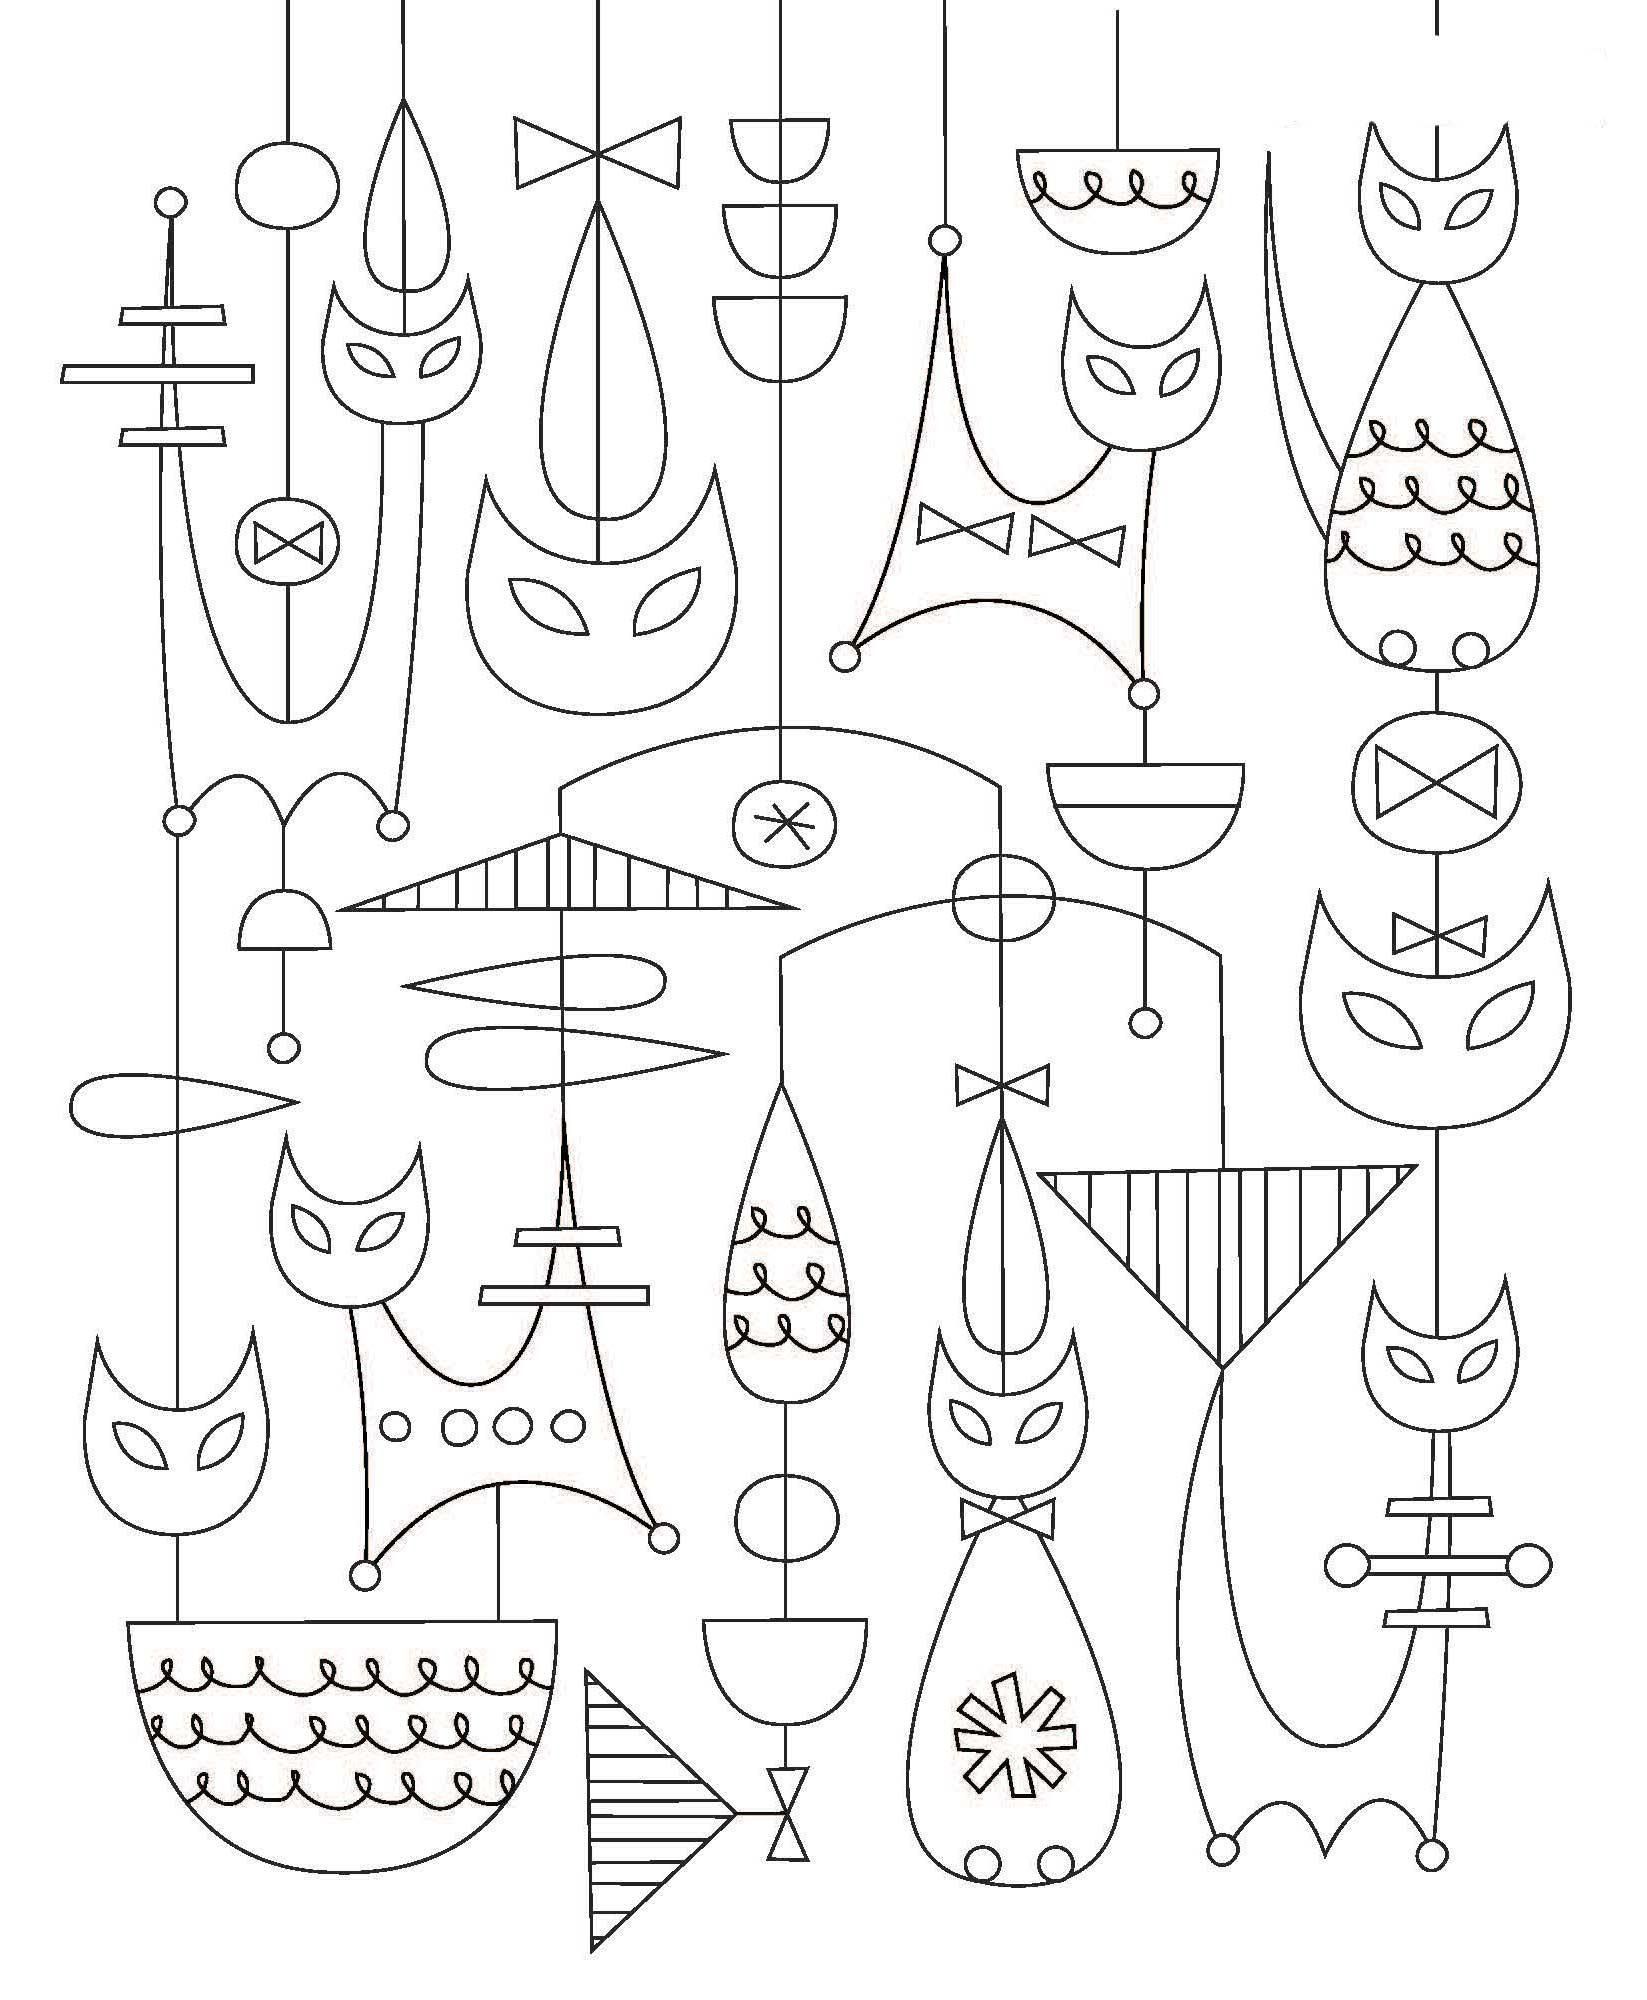 Amazon.com: Just Add Color: Mid-Century Modern Animals: 30 ...